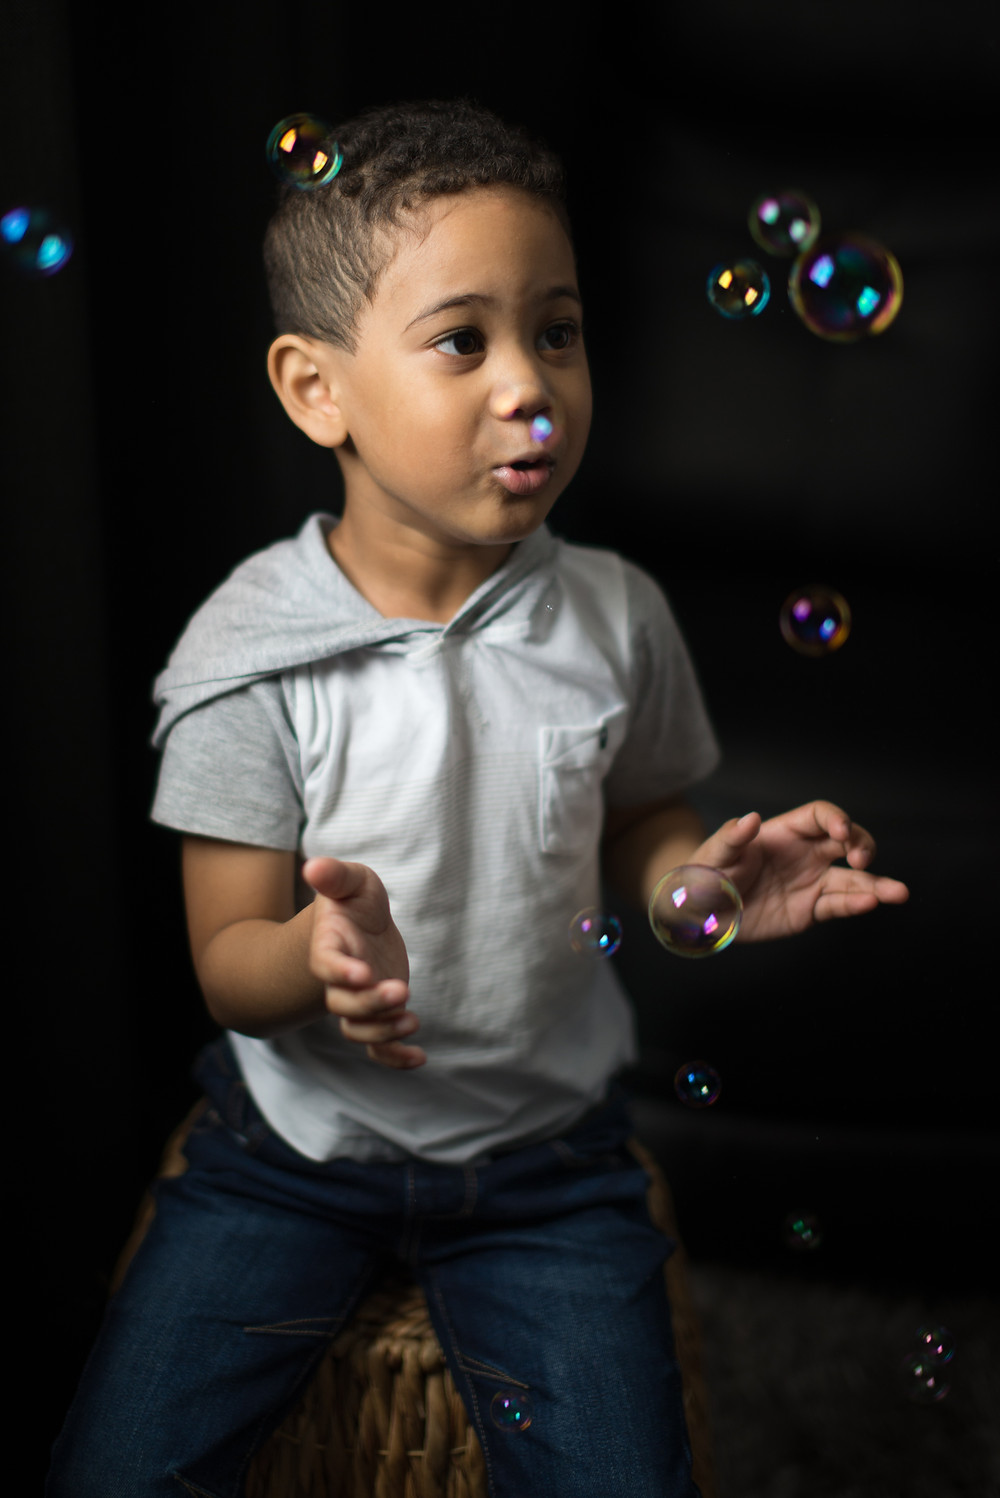 Children photography playing with bubbles